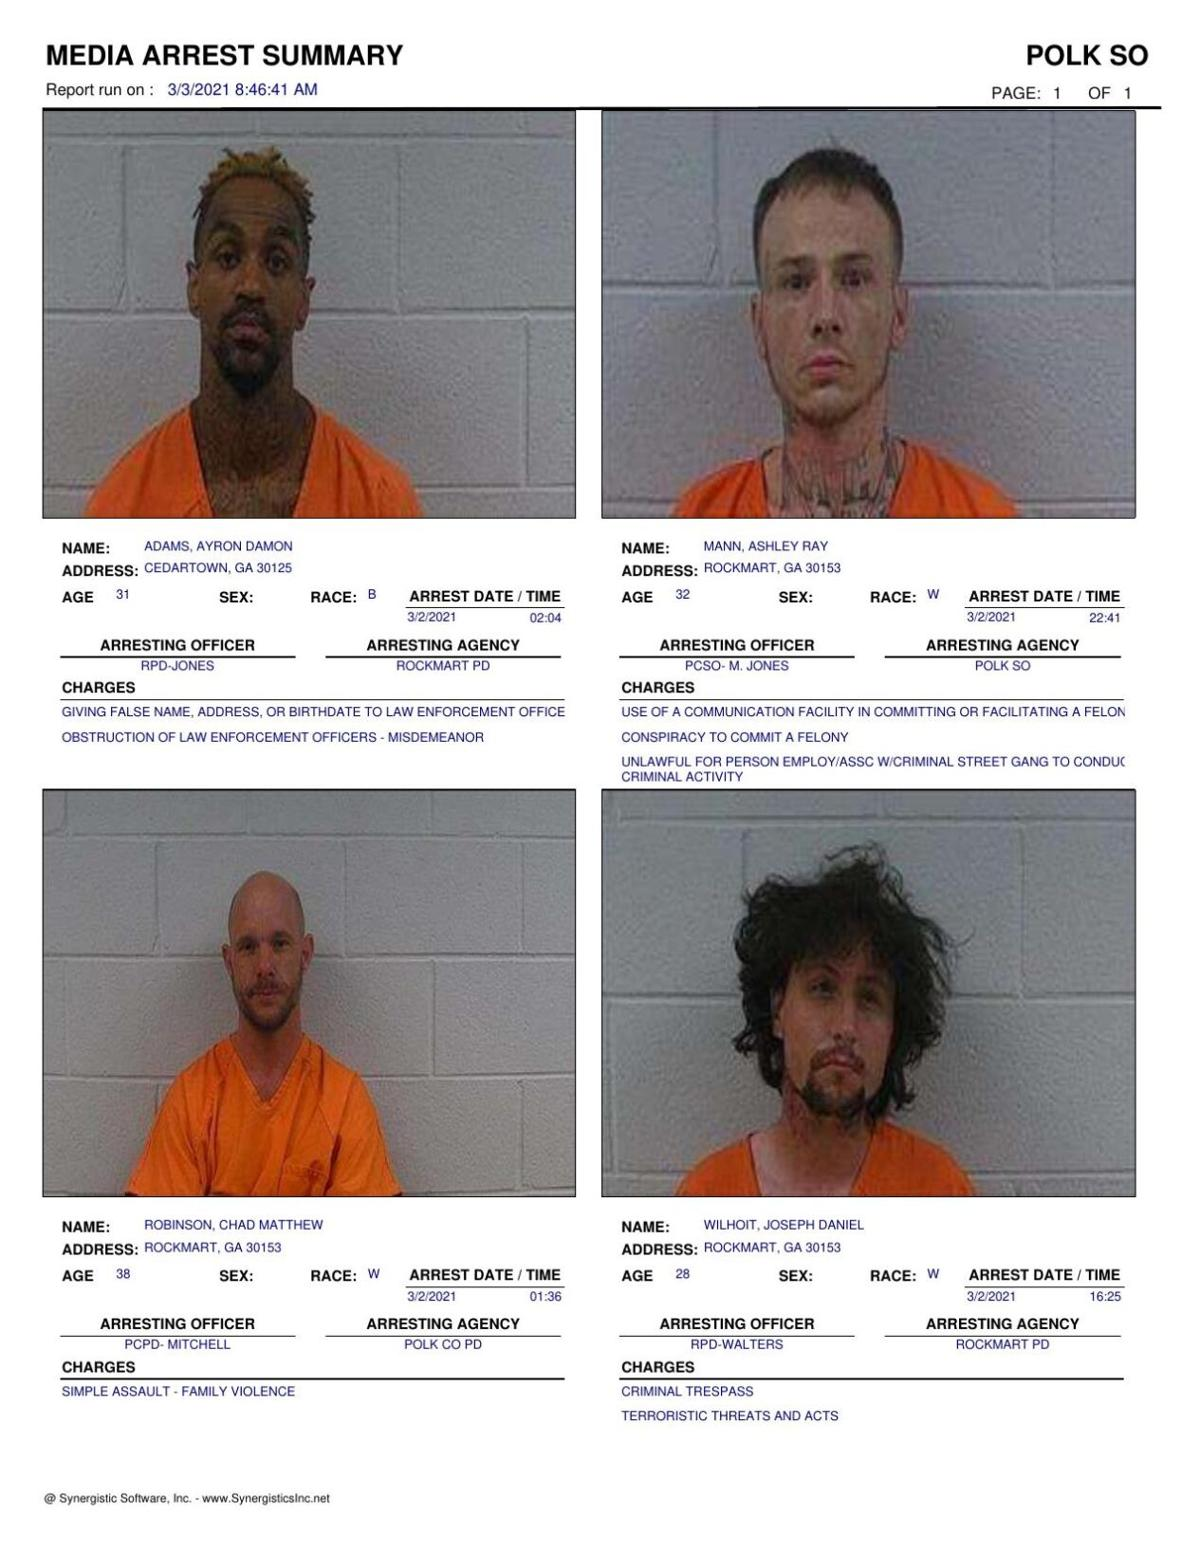 Polk County Jail Report for Wednesday, March 3